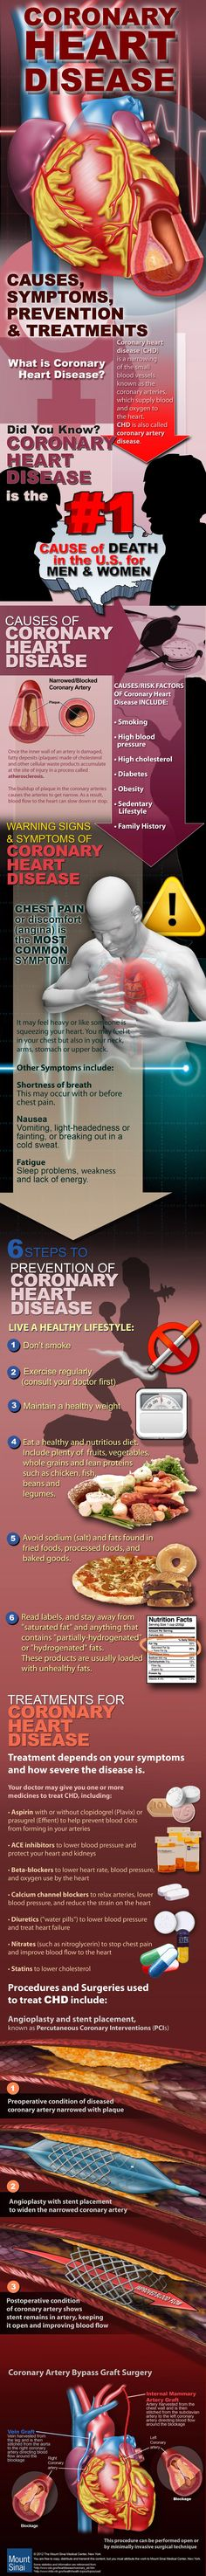 Coronary Heart Disease - Also Known as Coronary Artery Disease - Causes, Symptoms, Prevention and Treatments Infographic heart attack prevention health Anne Fleck, Cardiac Nursing, Nursing Mnemonics, Angina, Ecg, Cardiovascular Disease, Heart Health, Heart Attack, Fitness